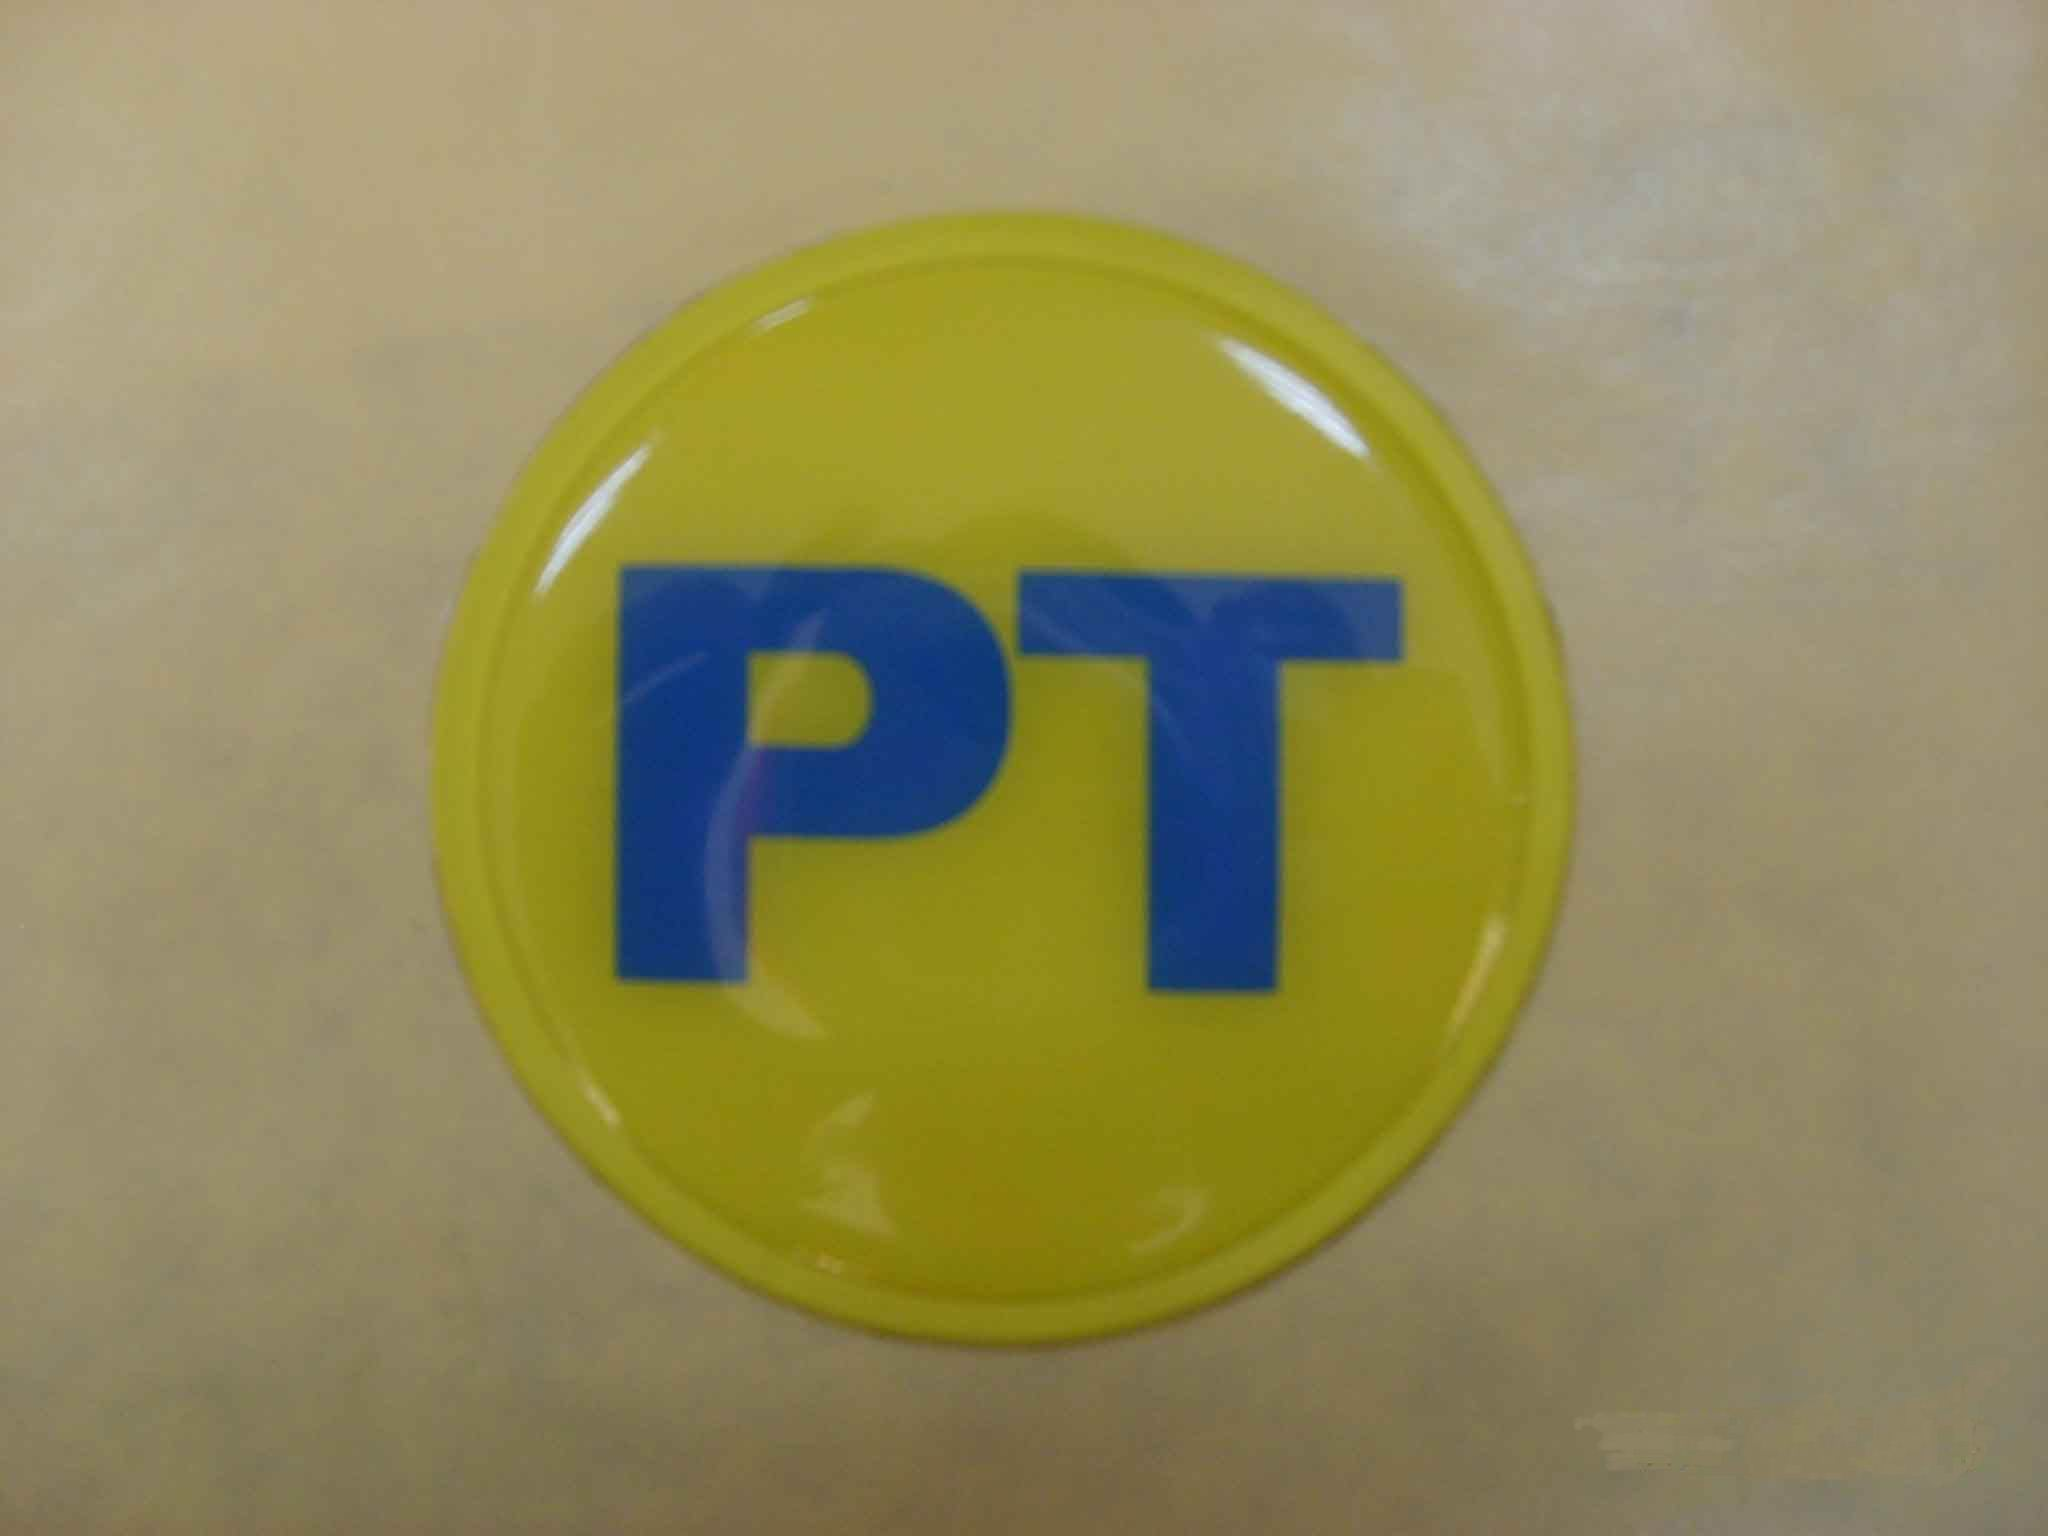 PT Lettering Epoxy Resin Sticker in transparent background